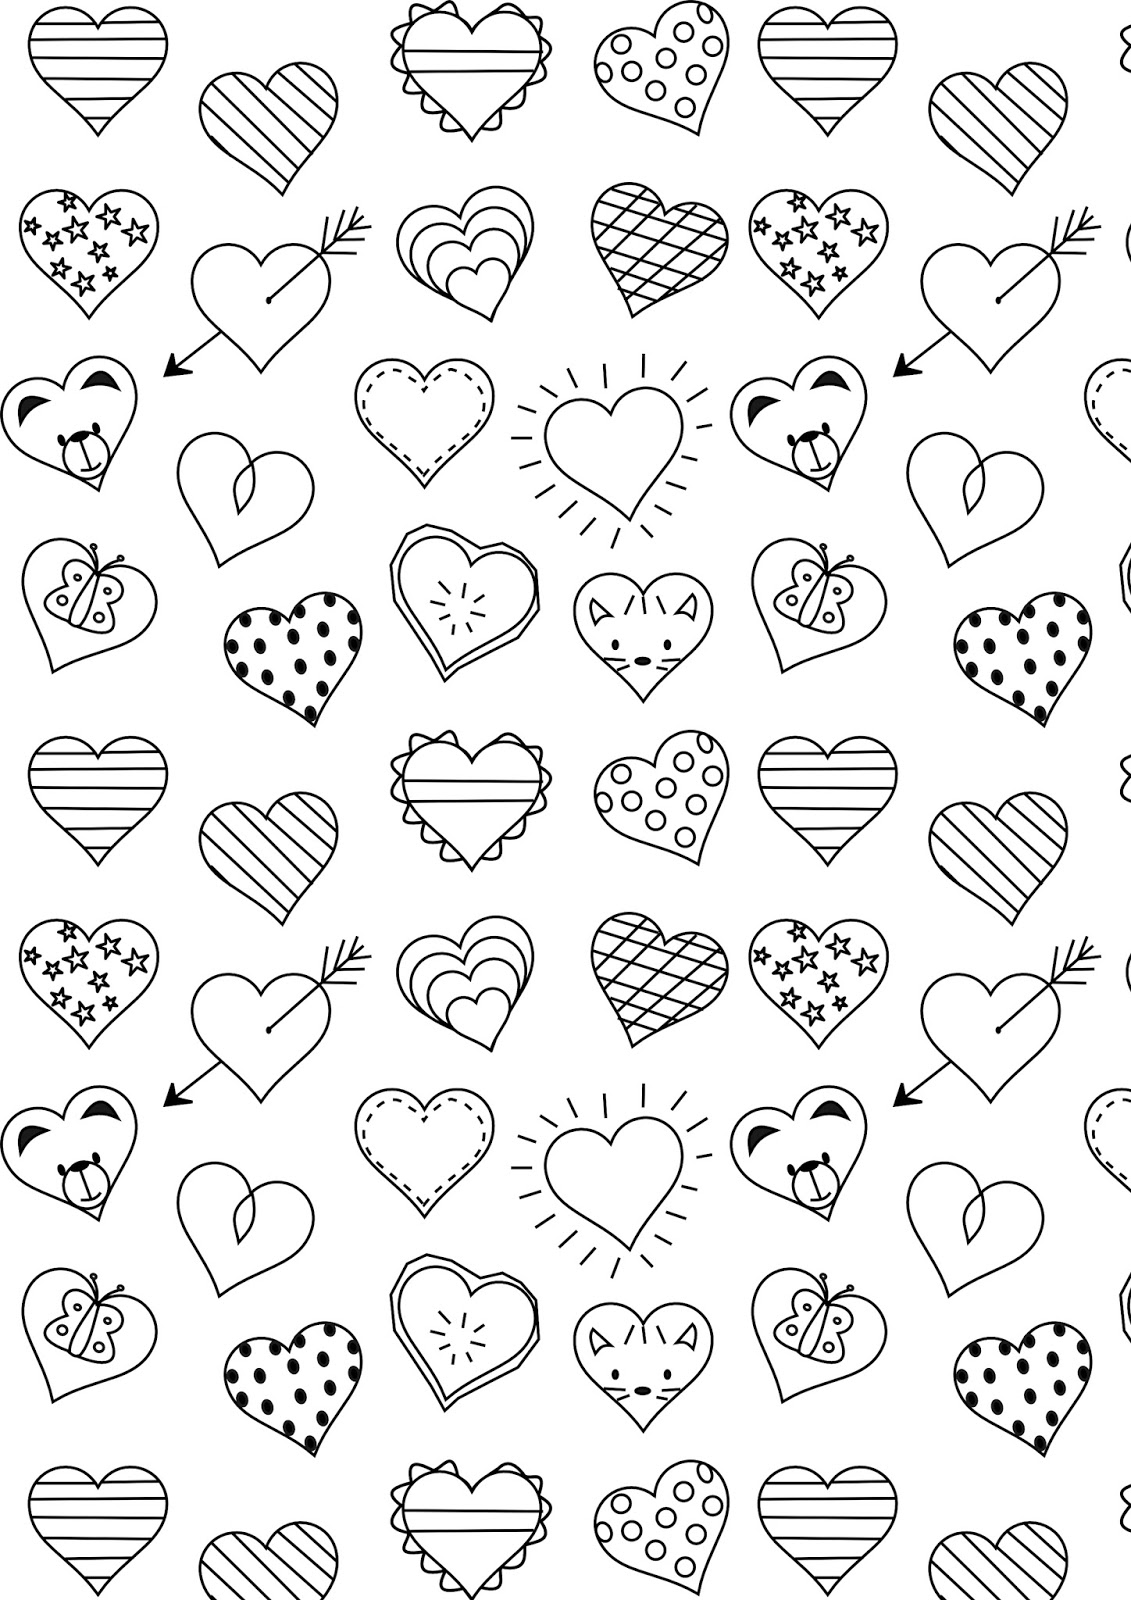 heart color page coloring pages hearts free printable coloring pages for page heart color